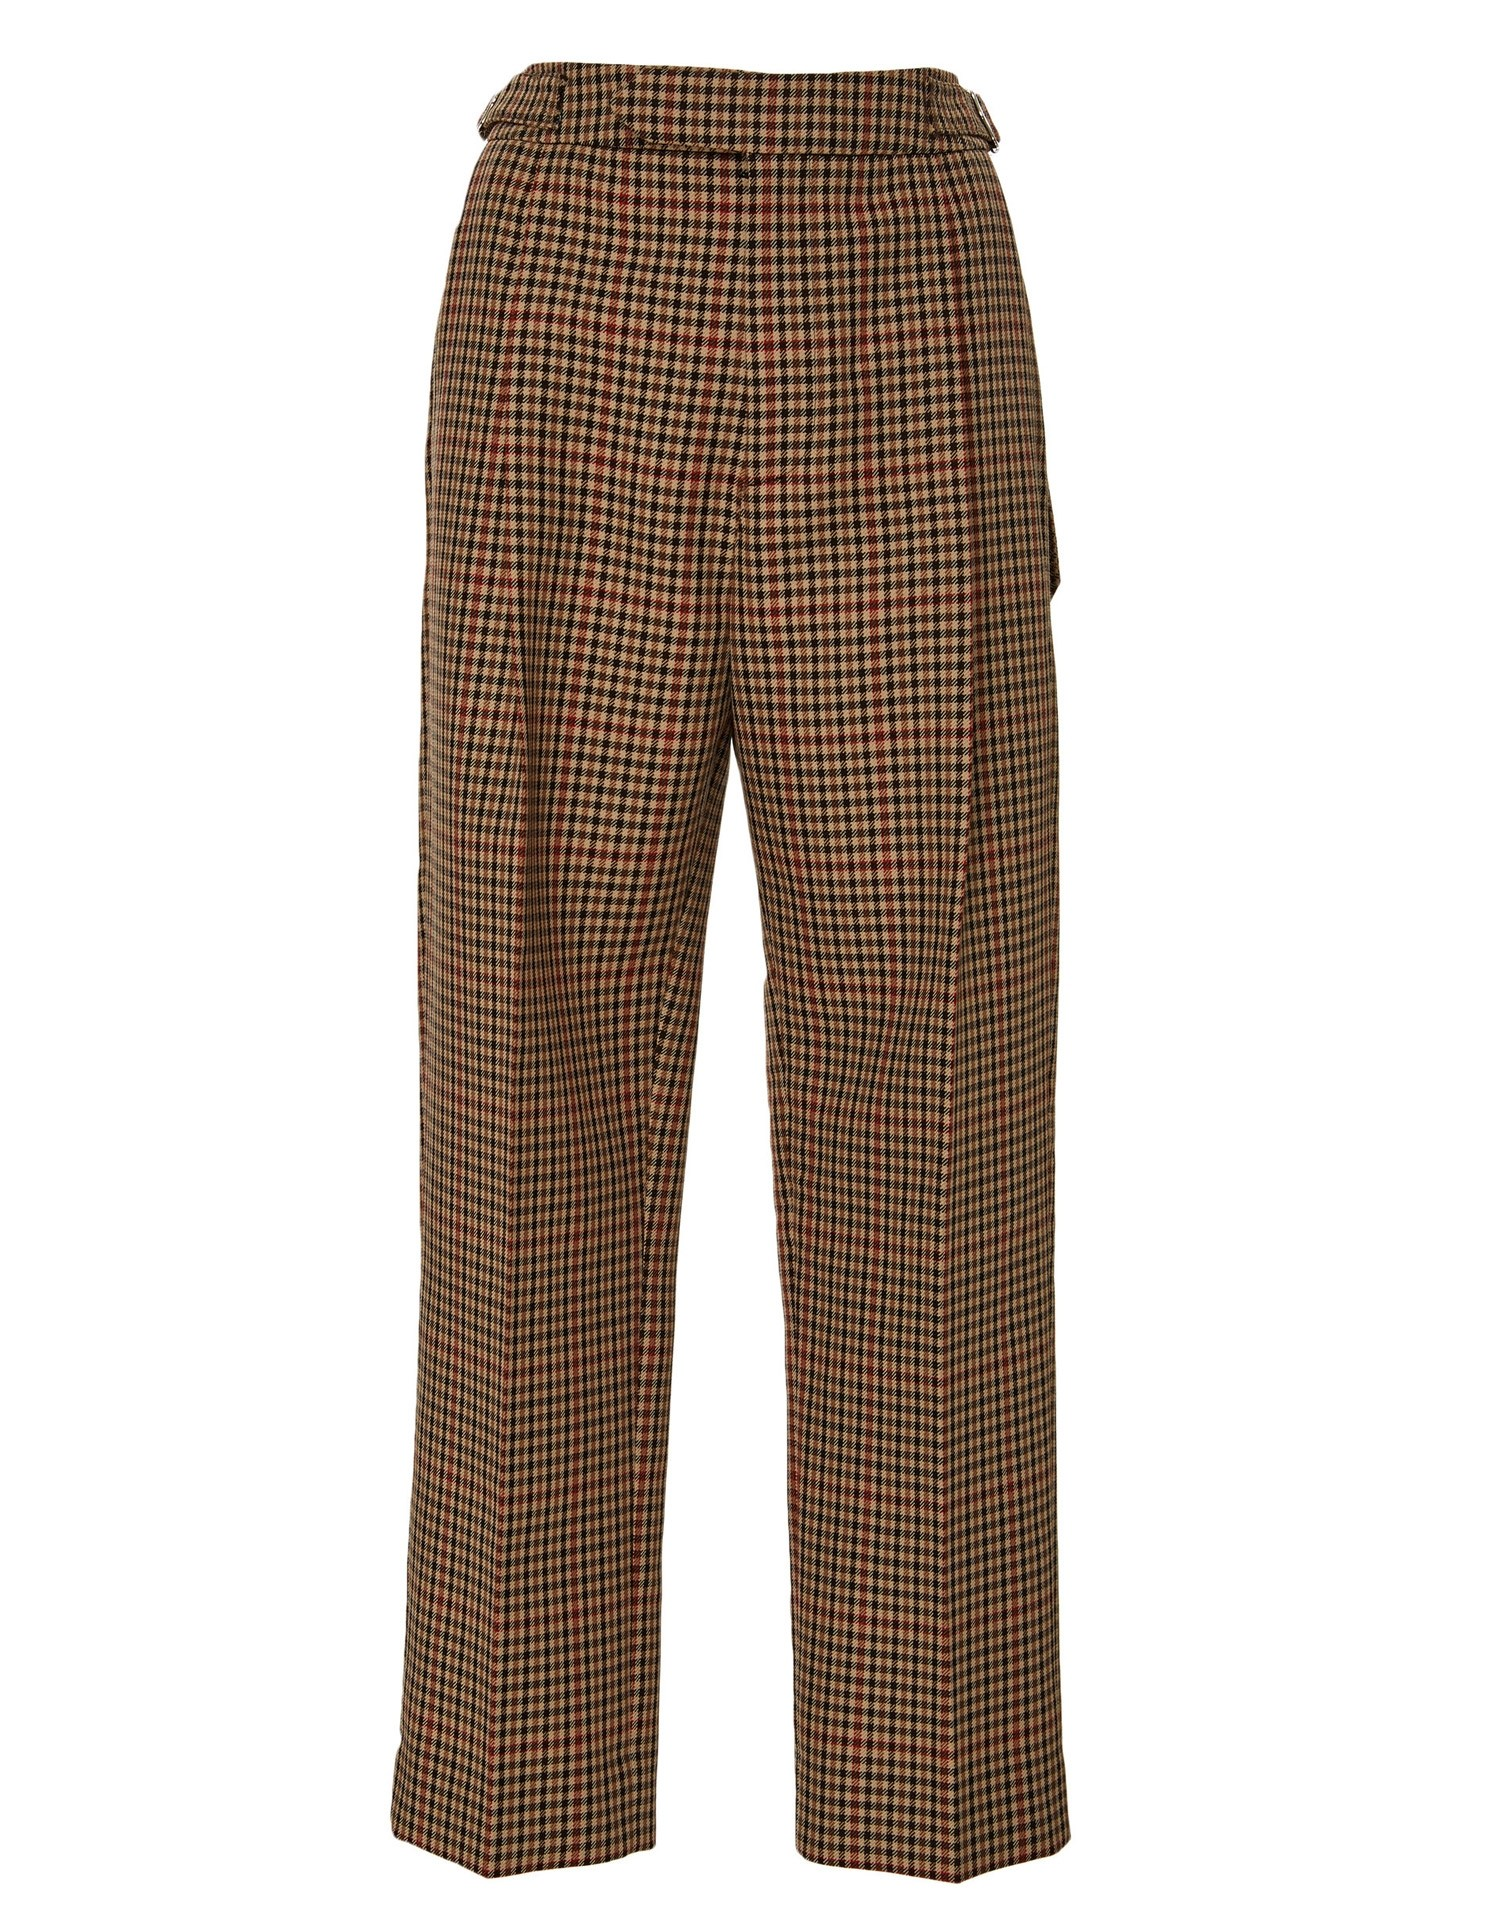 Pleated Trouser Brown Plaid